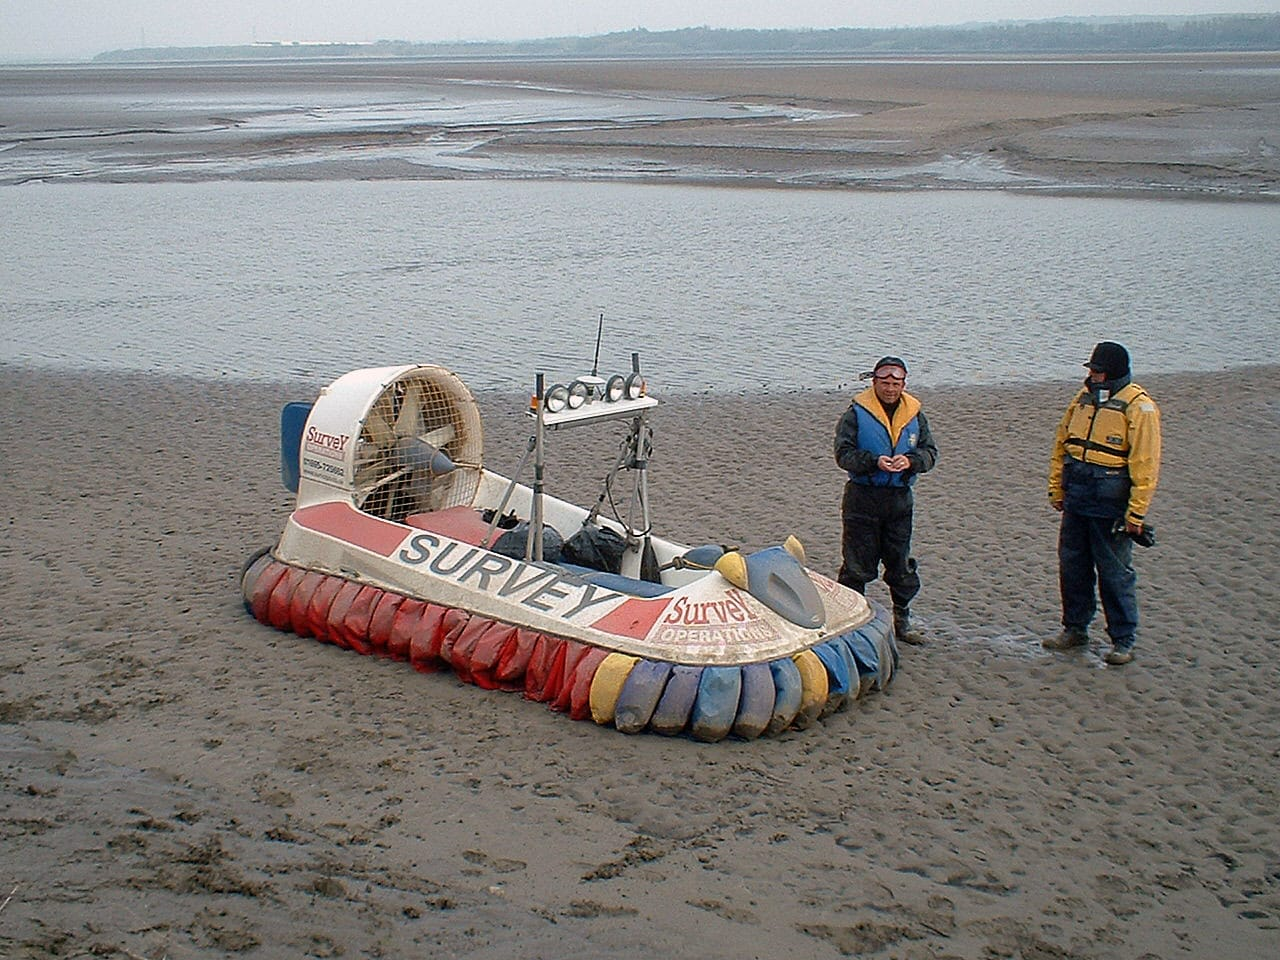 Image of the Survey Operations hovercraft used for Coastal Monitoring.